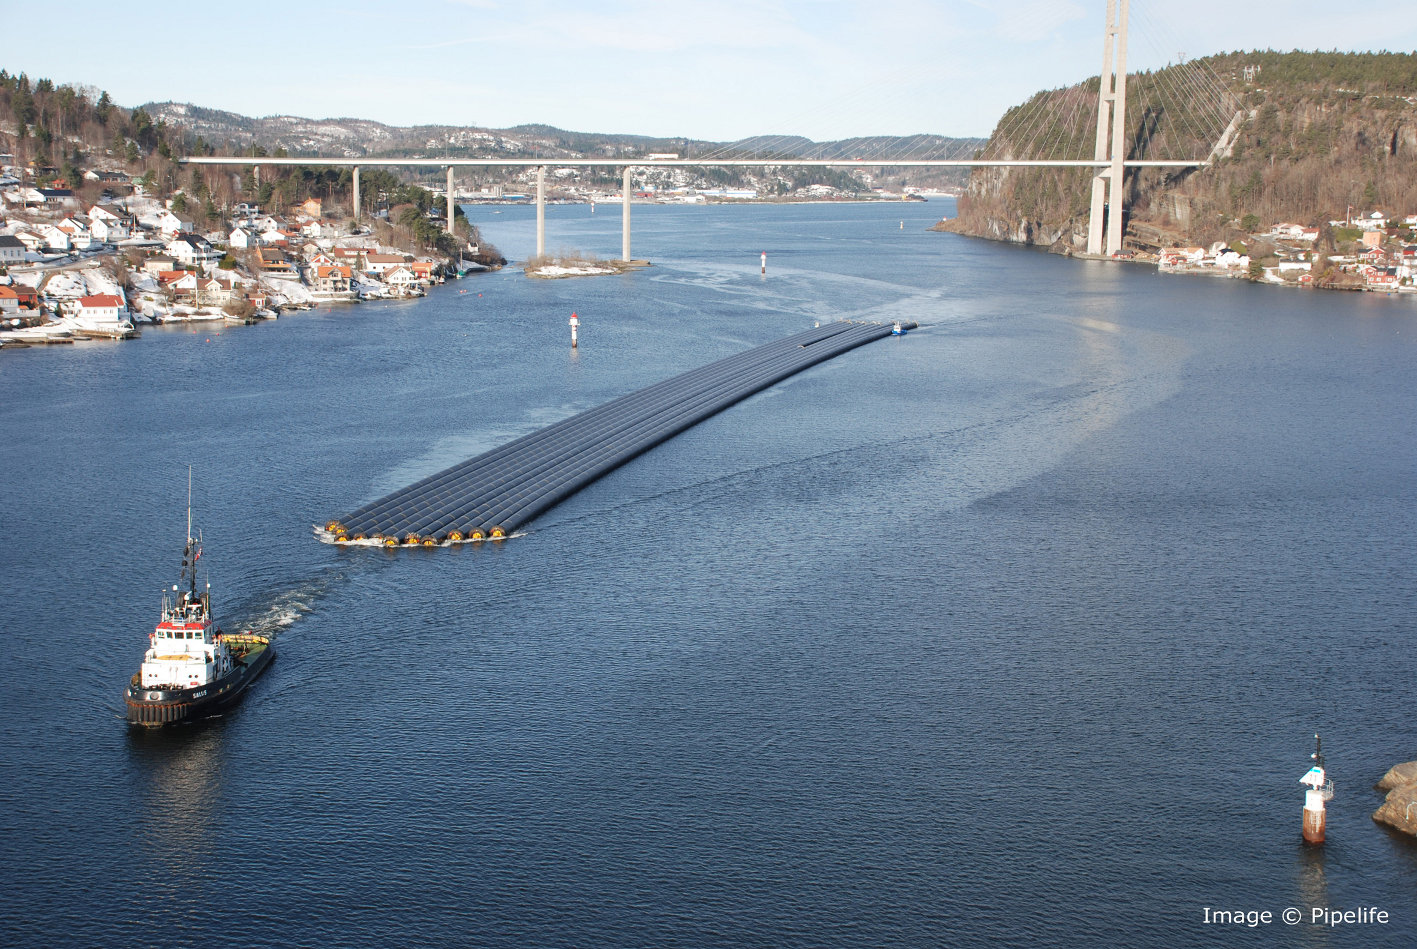 Through extrusion of the large-diameter pipes directly into the sea and their transport by tugboat, transport costs can be saved and the risk of damage in transit minimized as well. Quick laying with only few joints is also possible. (photo: Pipelife)